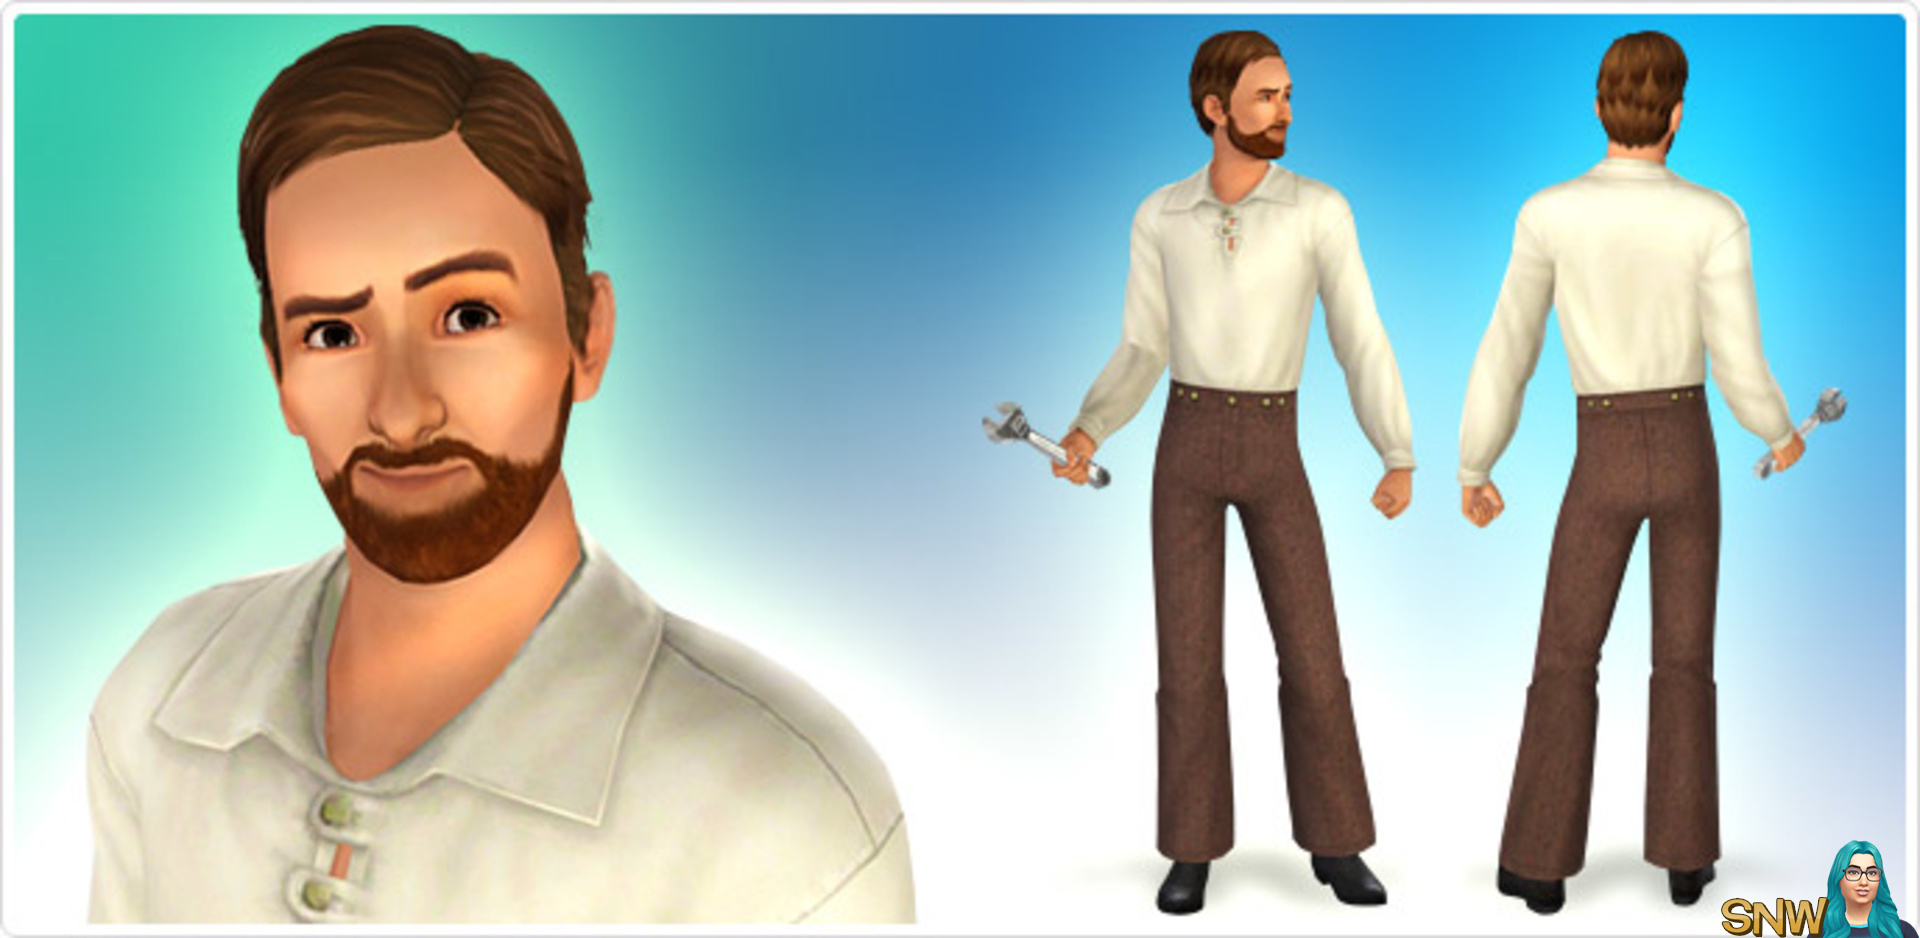 Sims News | SNW | SimsNetwork com